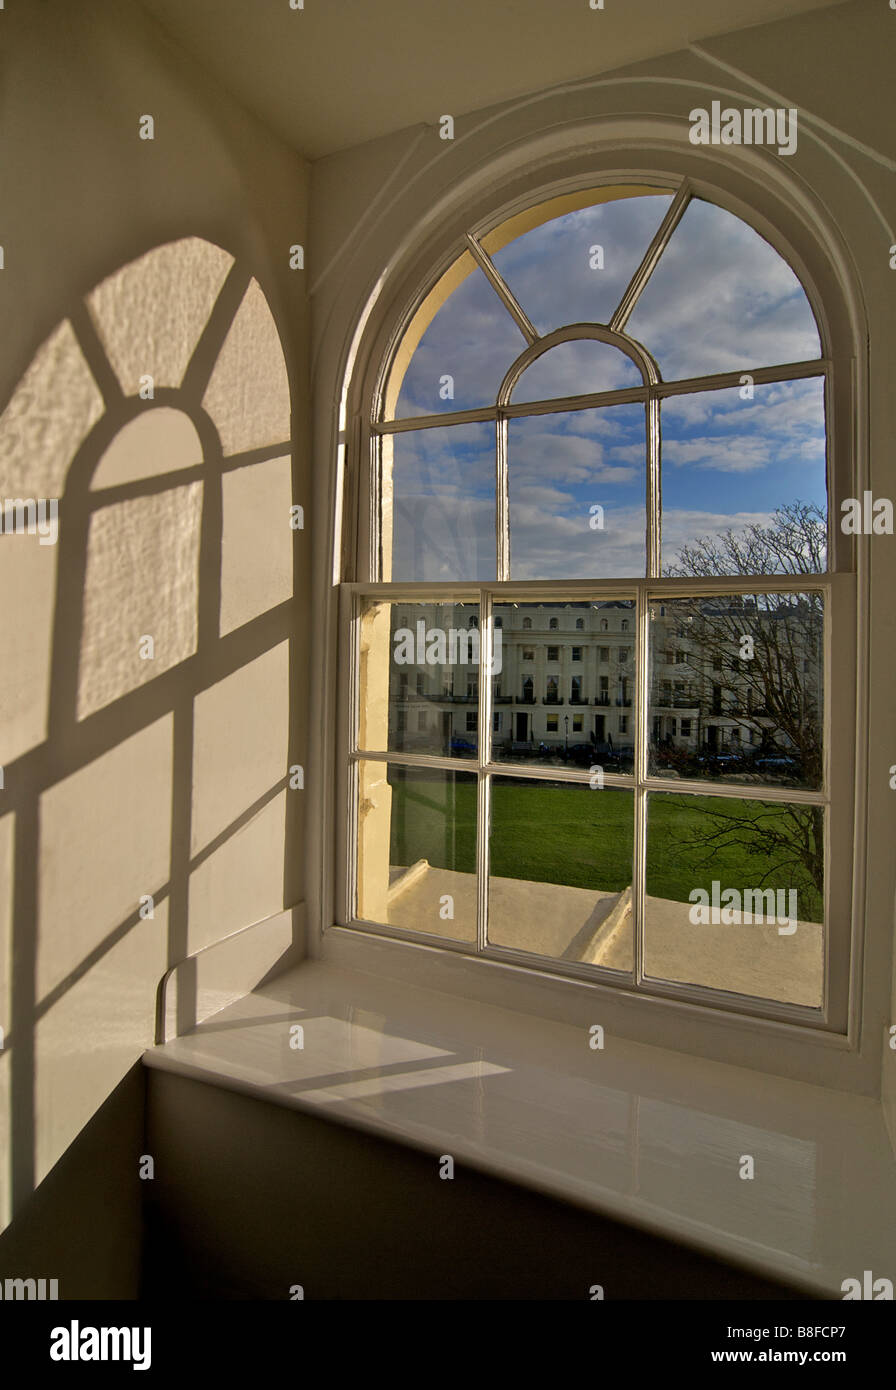 Interior. Looking out of an arched window. Regency architecture, Brunswick Square, Hove, East Sussex, England - Stock Image